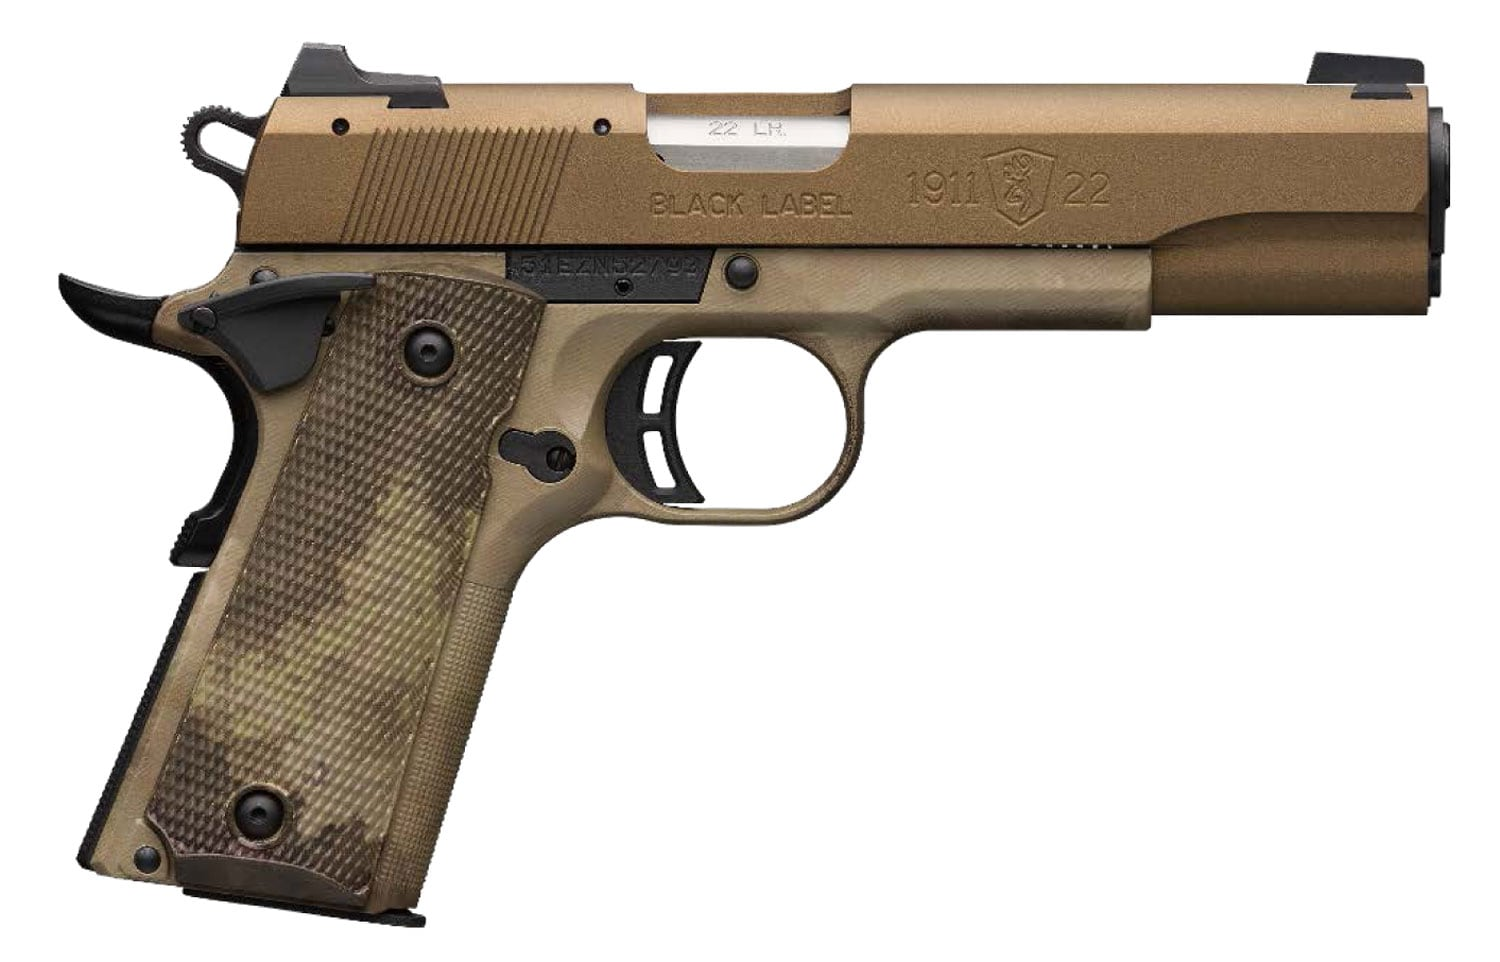 BROWNING 1911-22 SPEED COMPACT